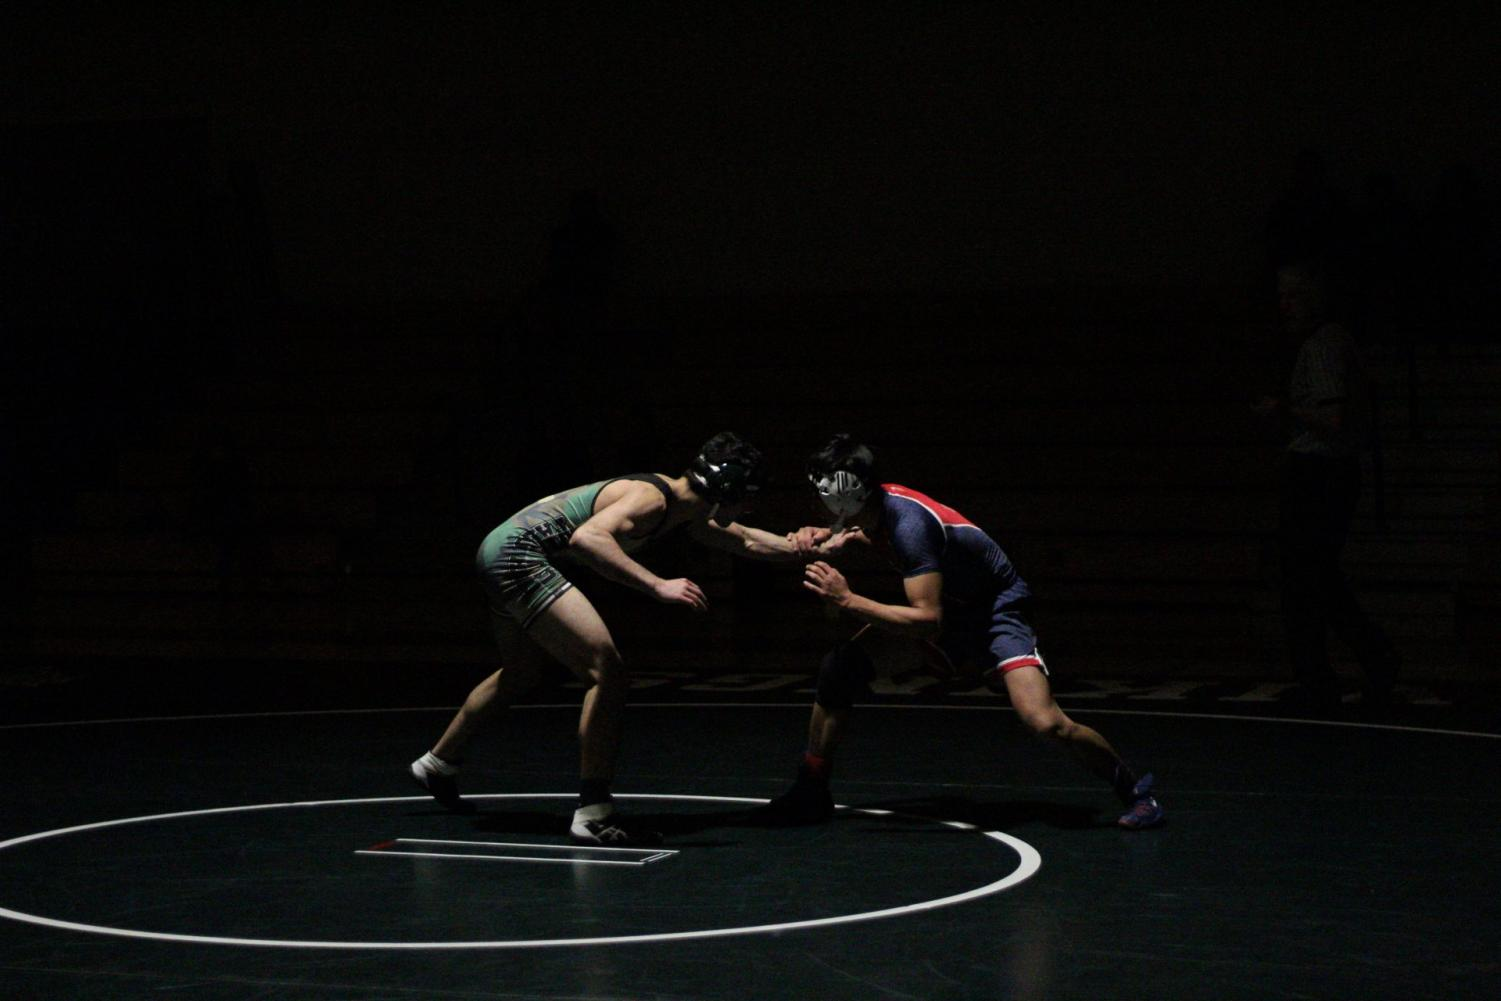 Senior Dara Heydarpour faces off against his opponent Isaac Yoon in Paly's wrestling match against Lynbrook Tuesday. Heydarpour dominated the match, winning with a pin, earning six points for Paly. Photo: Margaret Li